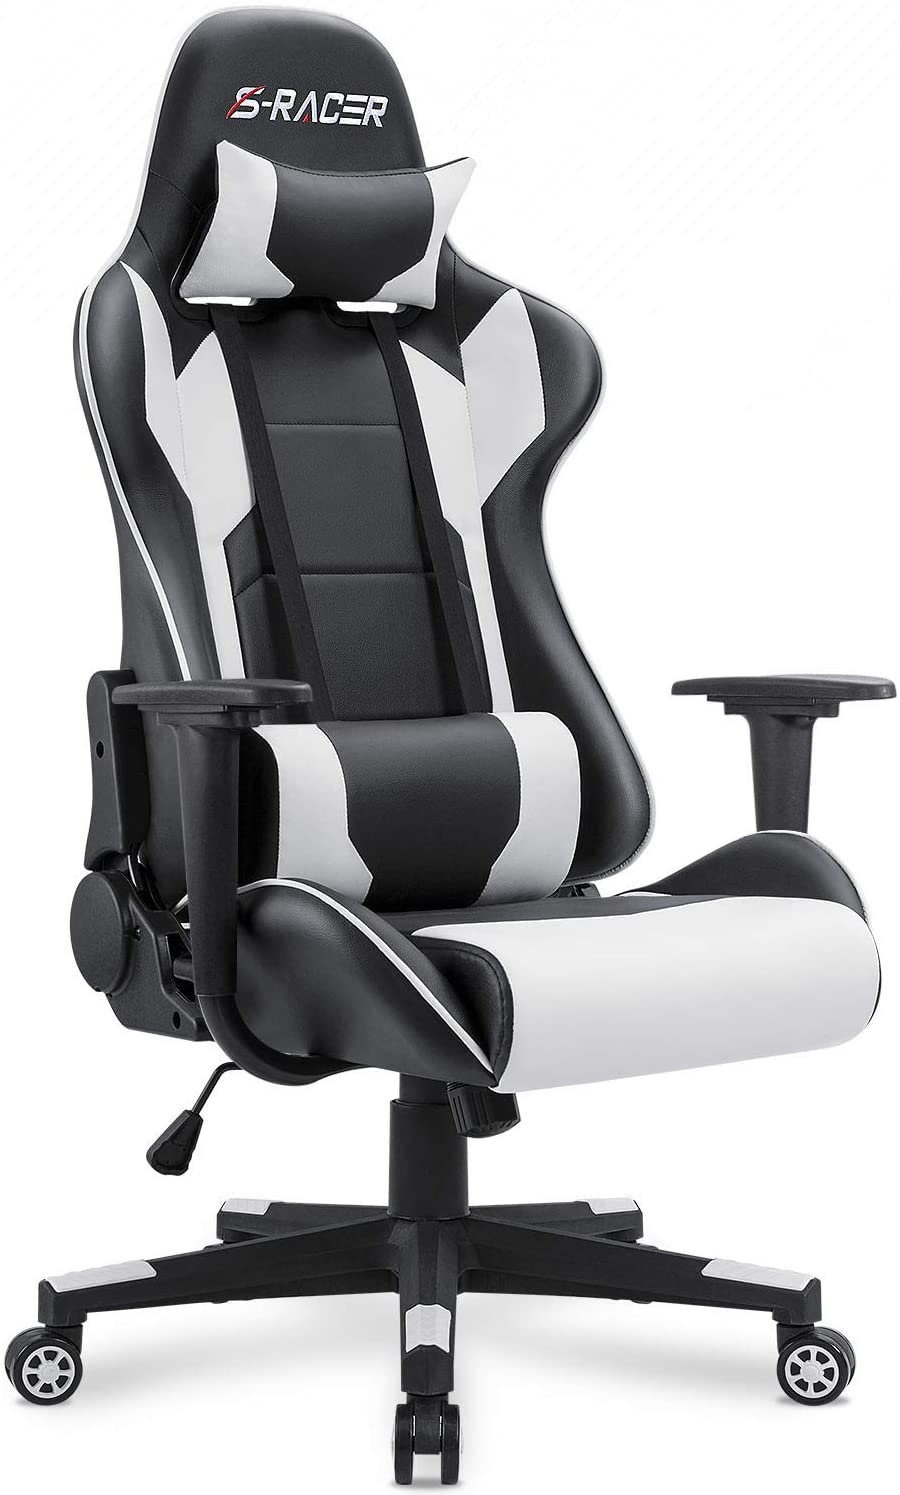 Amazon.com: Homall Gaming Chair Office Chair High Back Computer